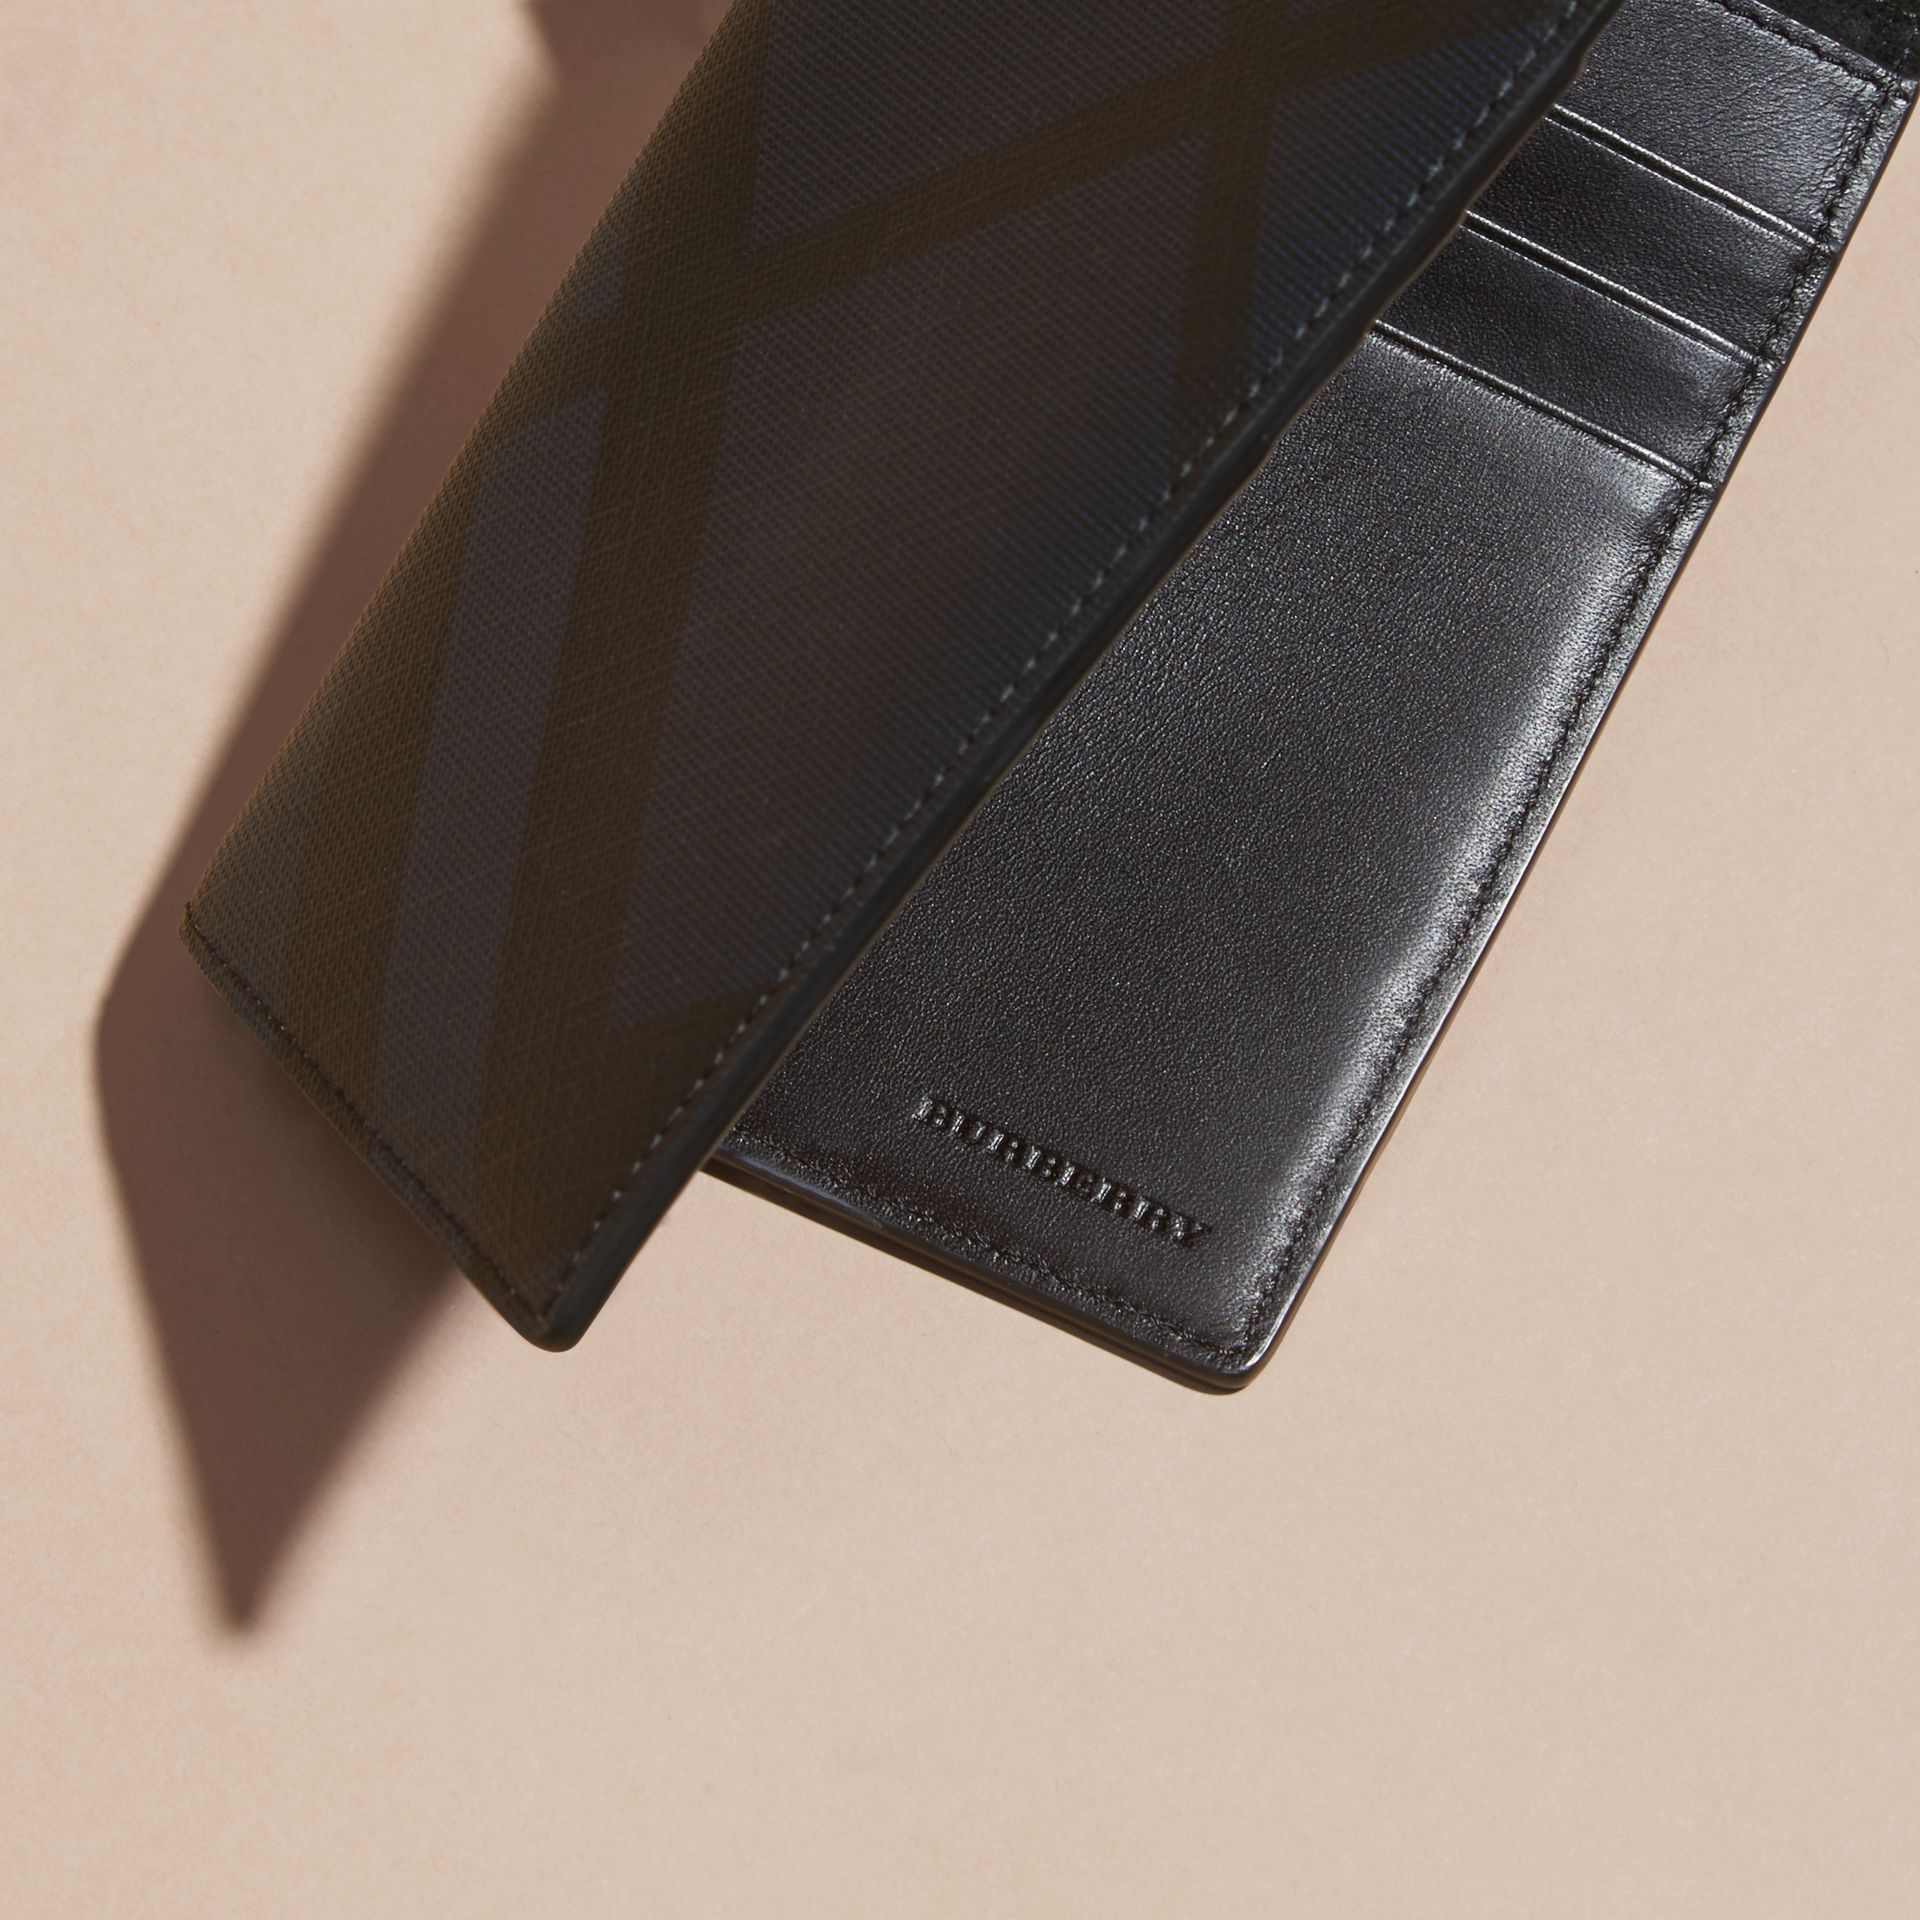 London Check and Leather Passport Holder in Navy/black - Men | Burberry - gallery image 2